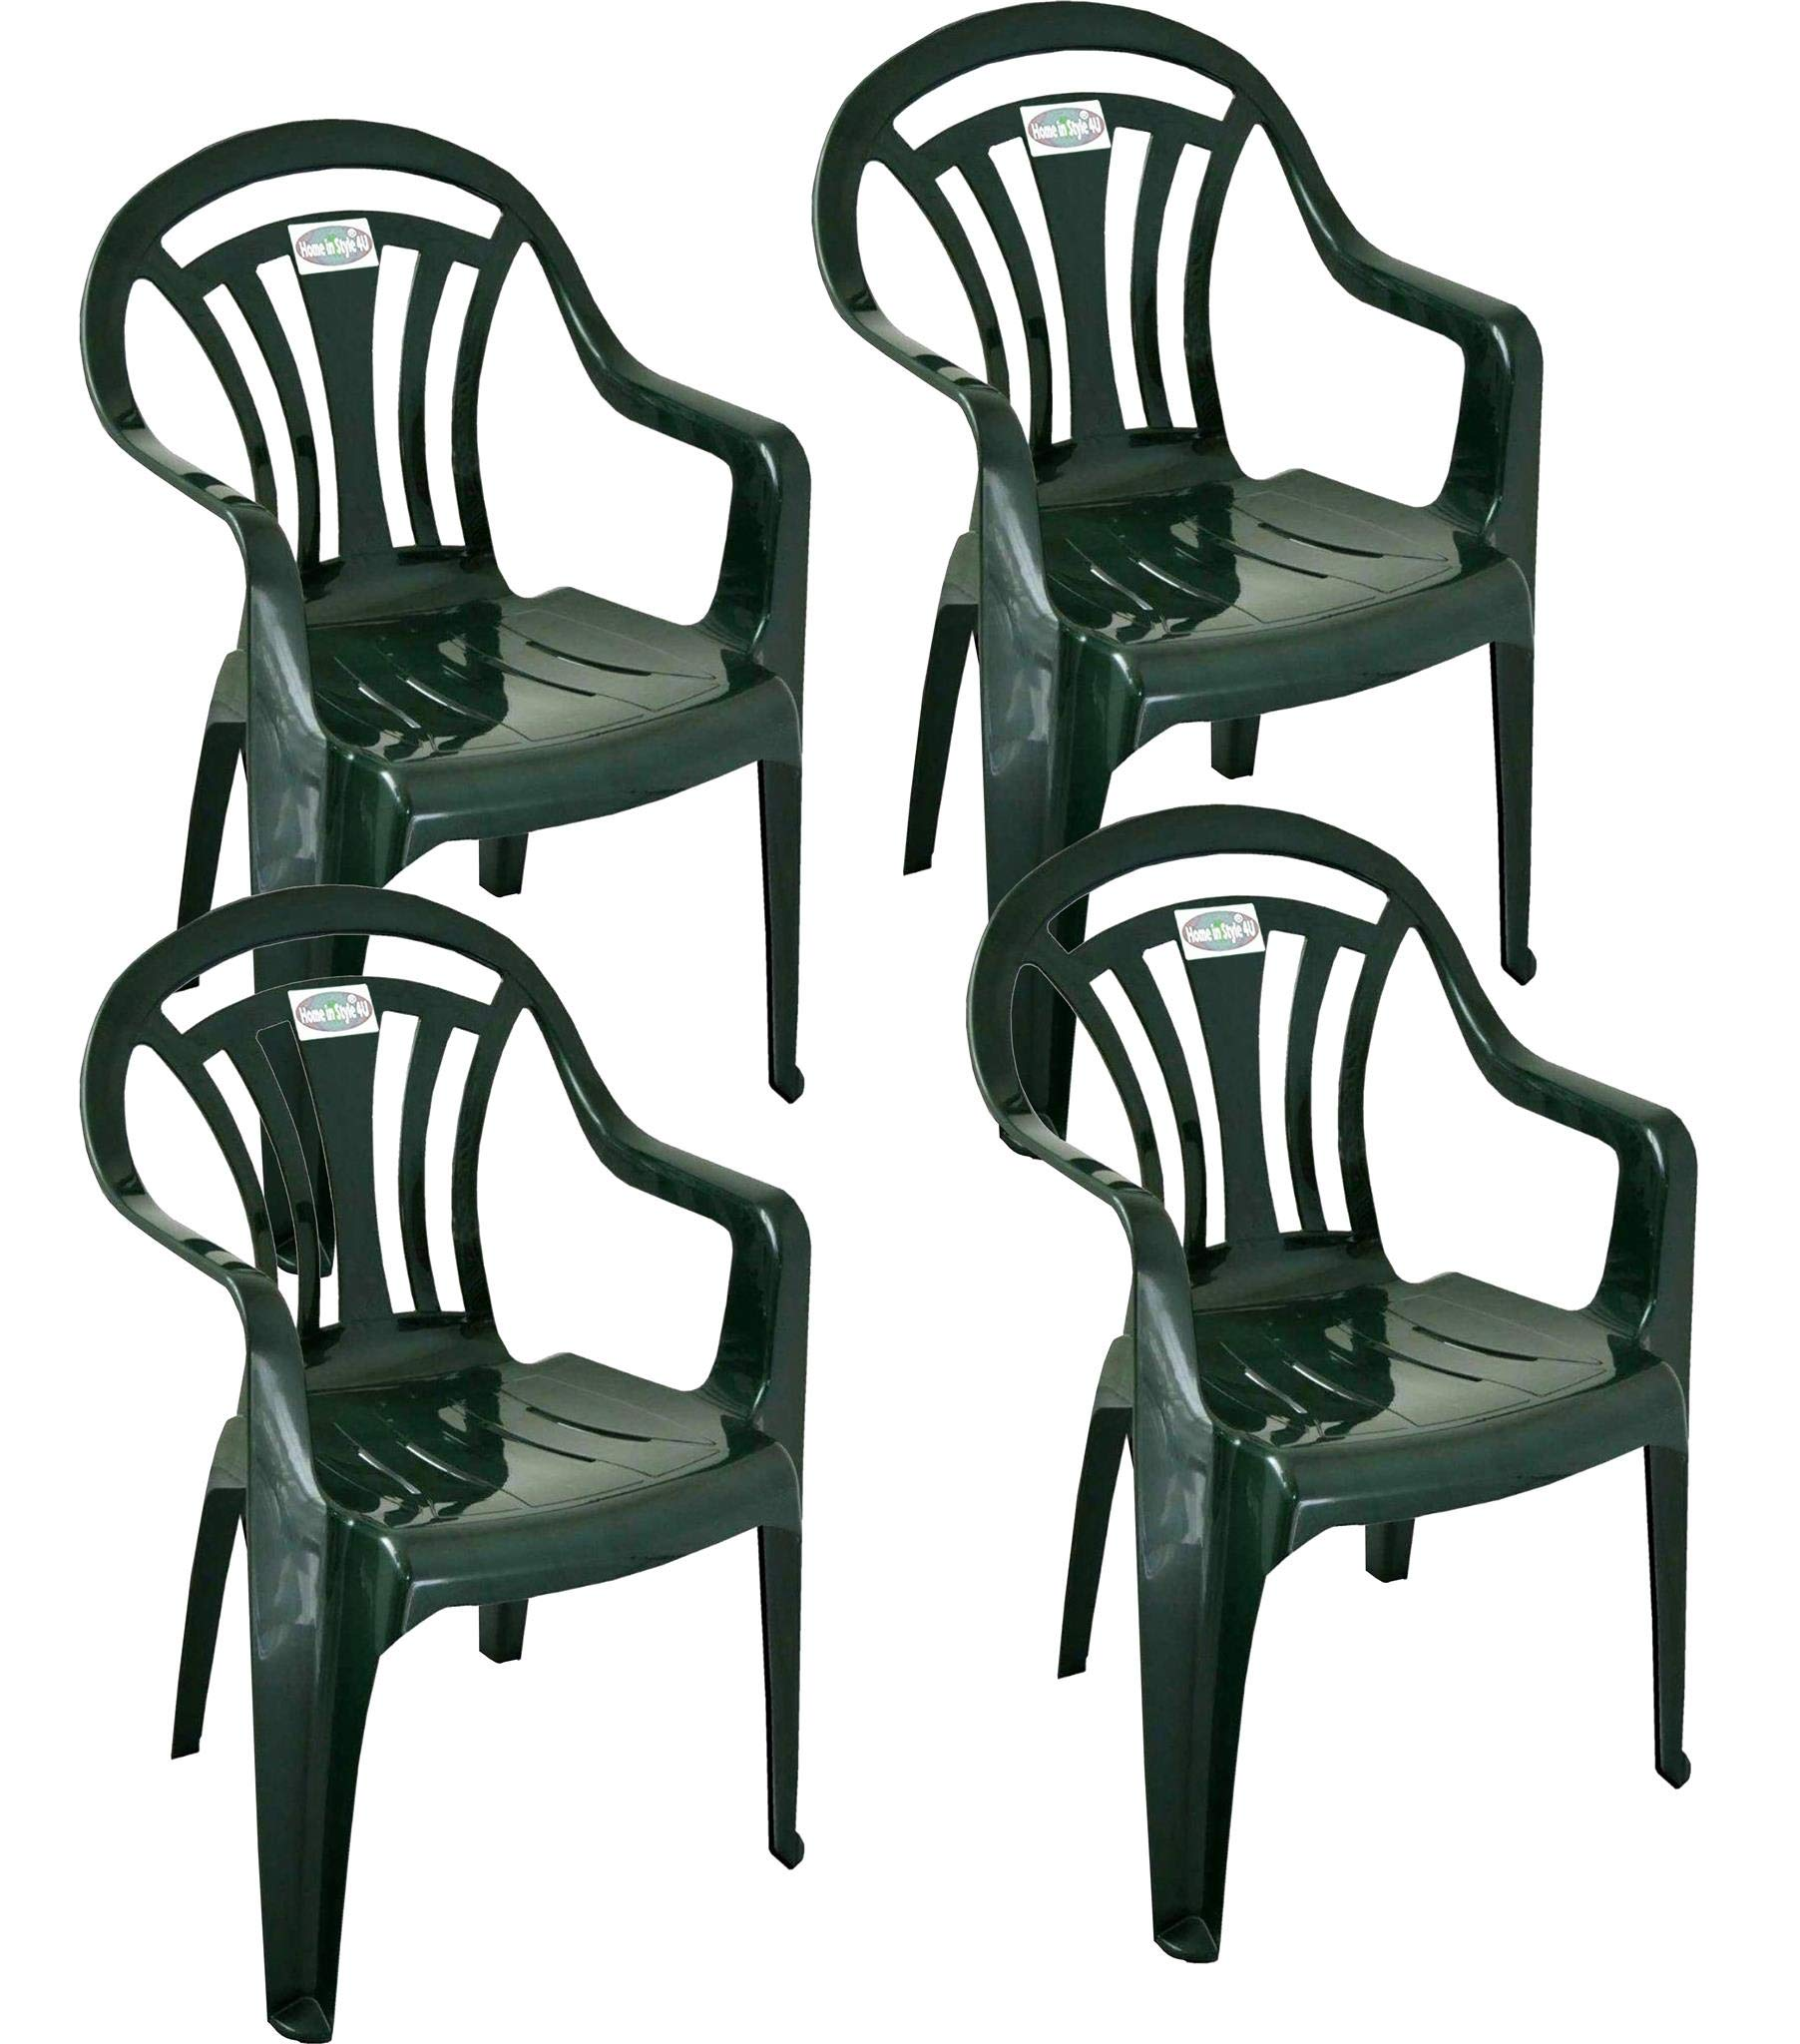 Pack of 10 Green Low Back Garden Chairs